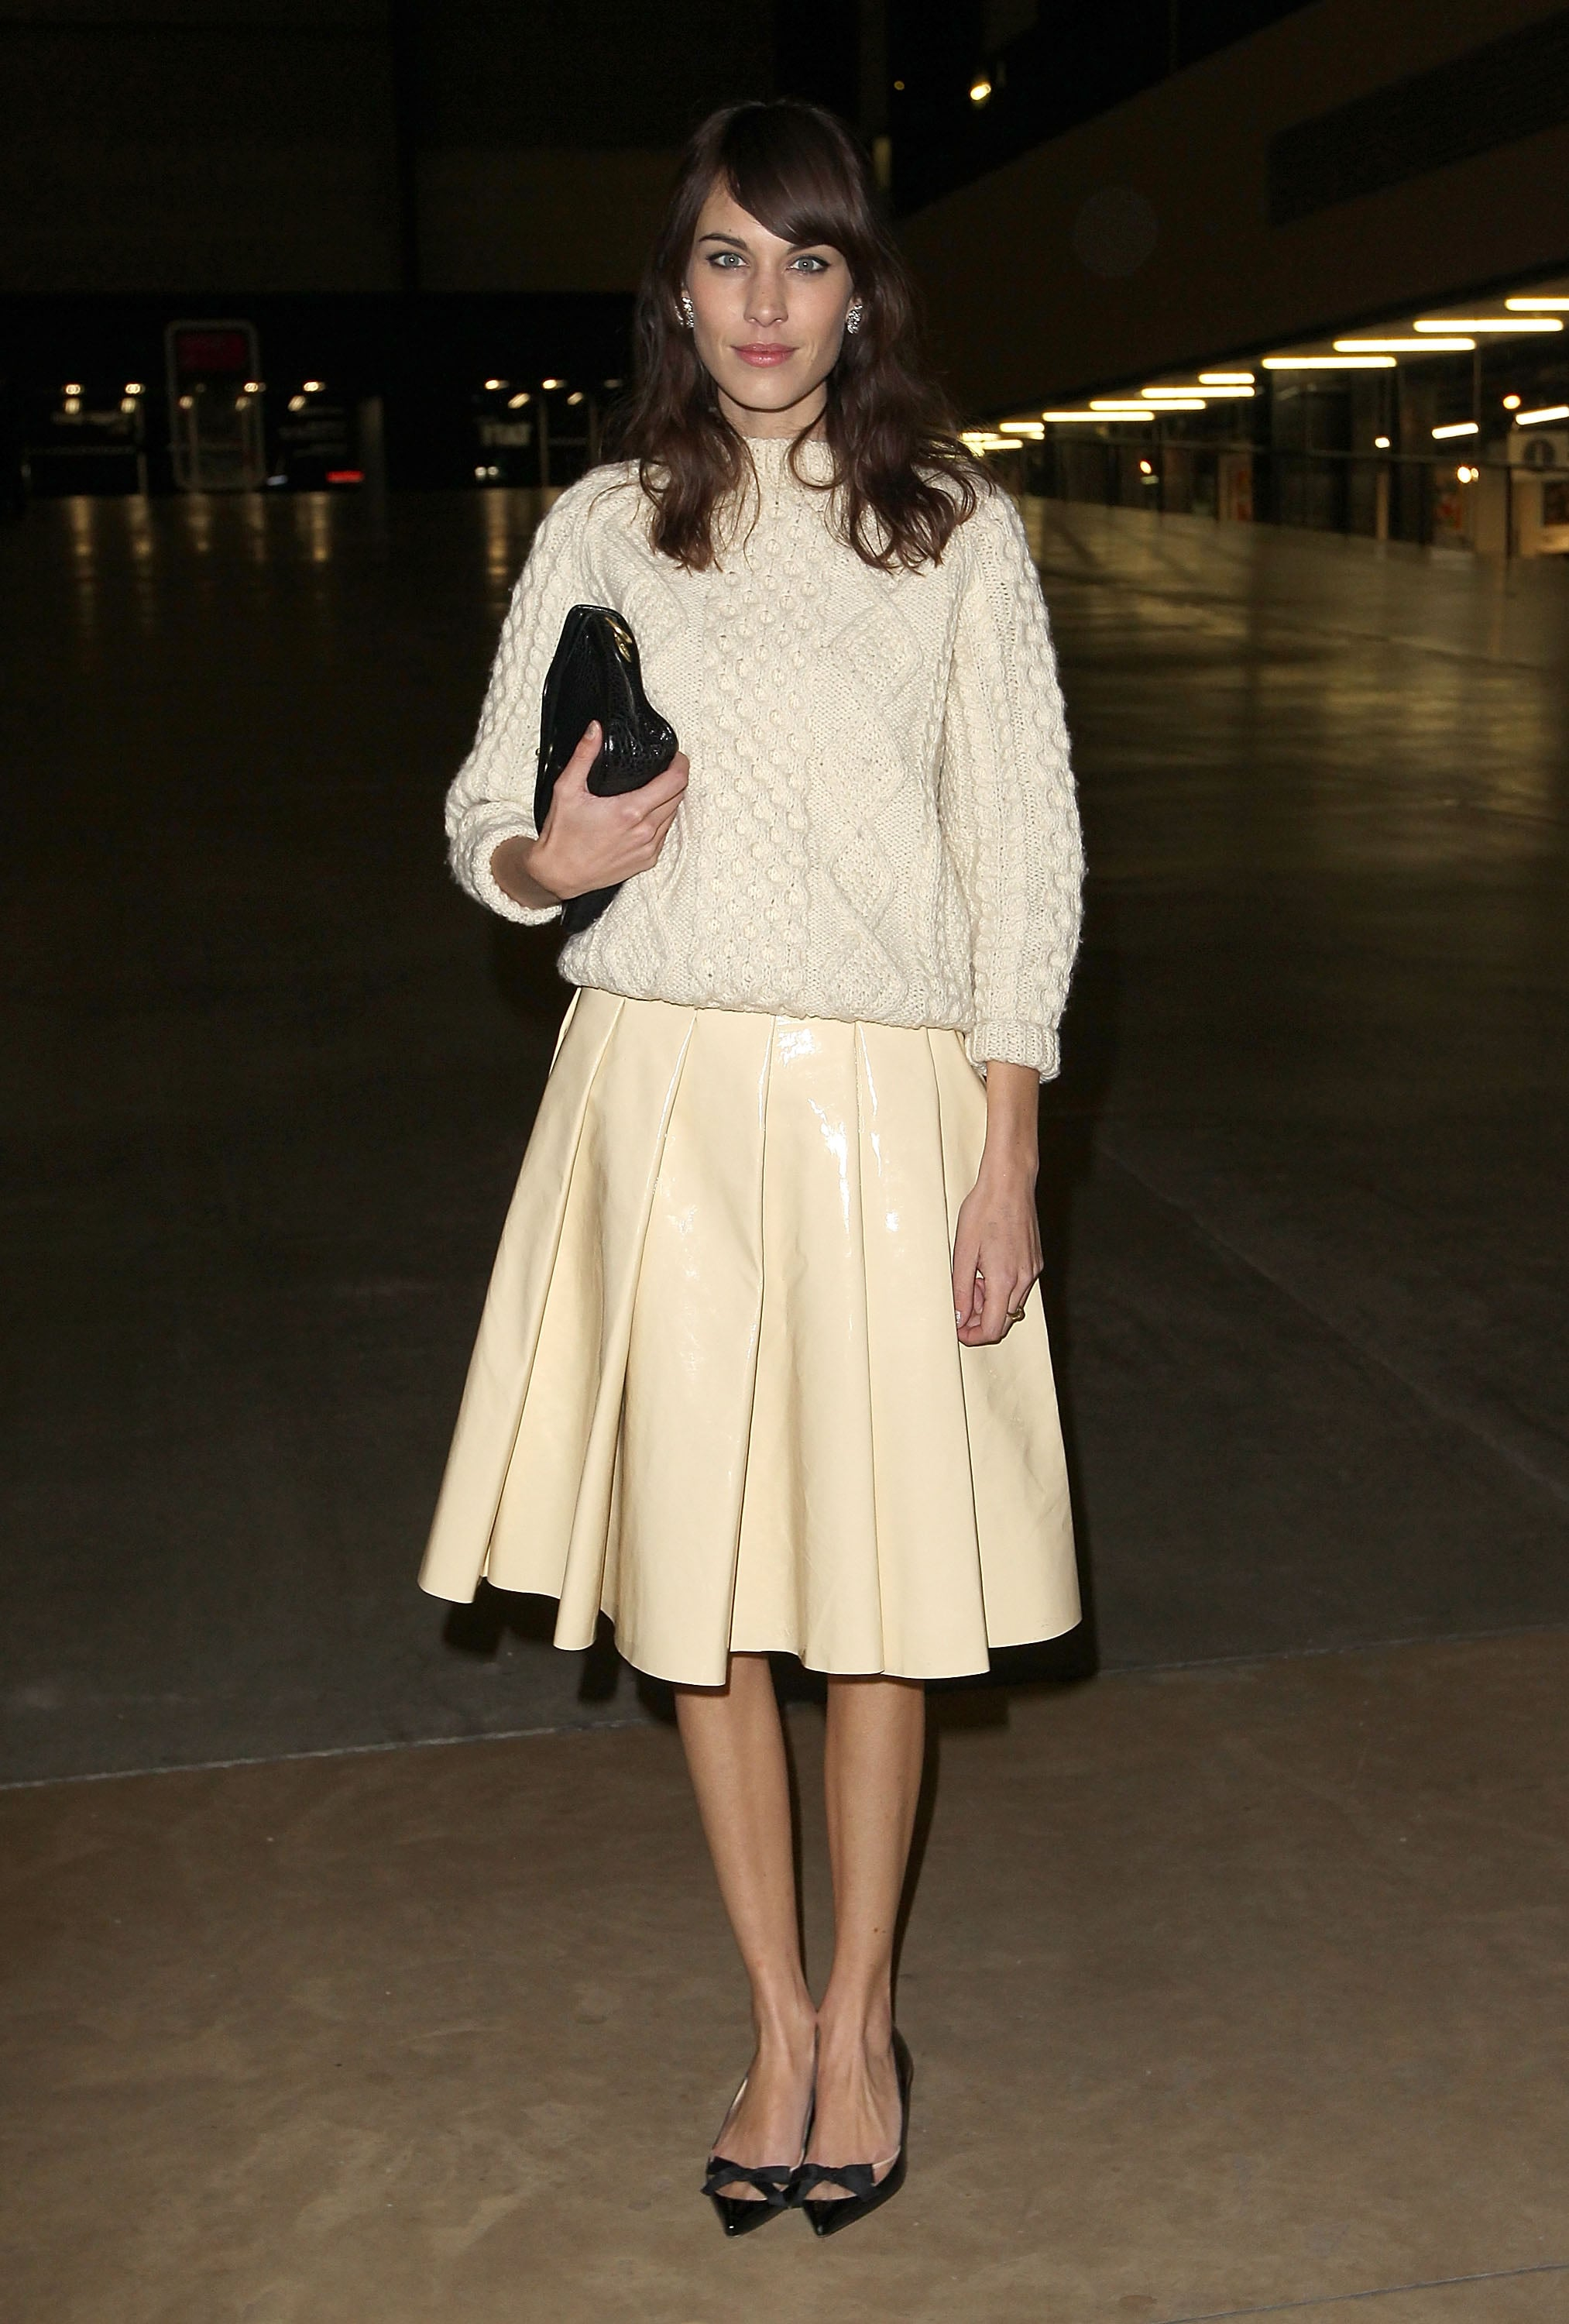 Alexa Chung at the J.W. Anderson Fall 2013 show in London.